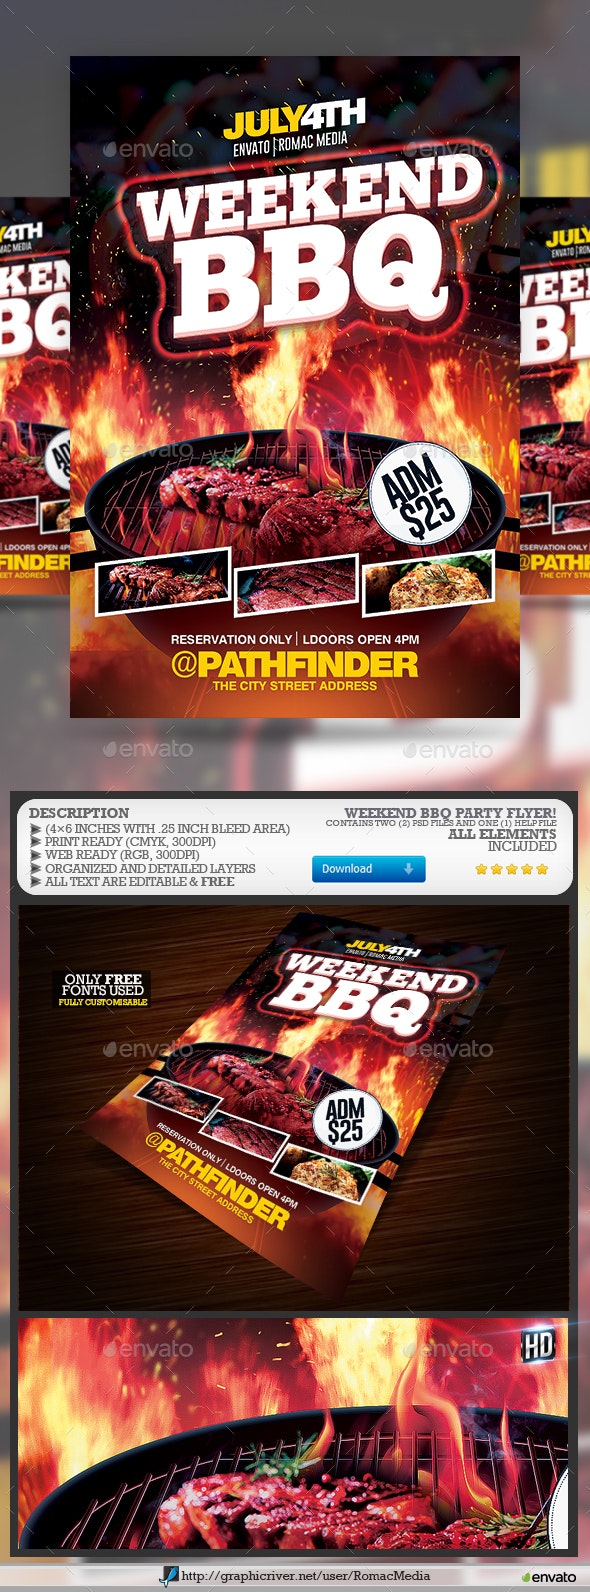 Weekend Barbecue BBQ Party Flyer - Events Flyers